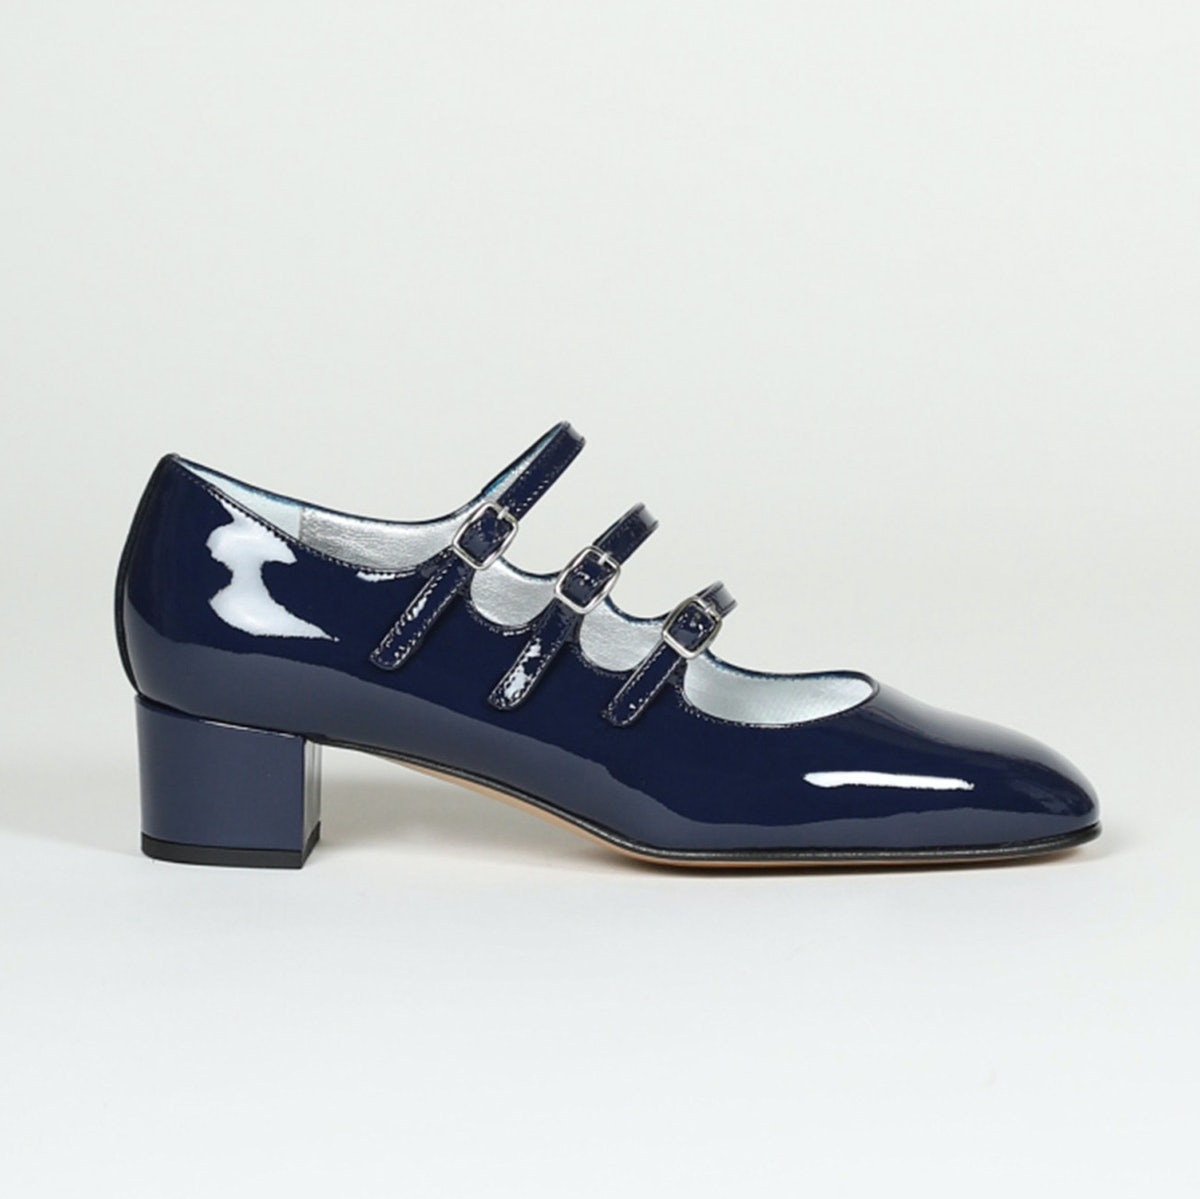 Carel Kina Blue Patent Leather Mary Janes